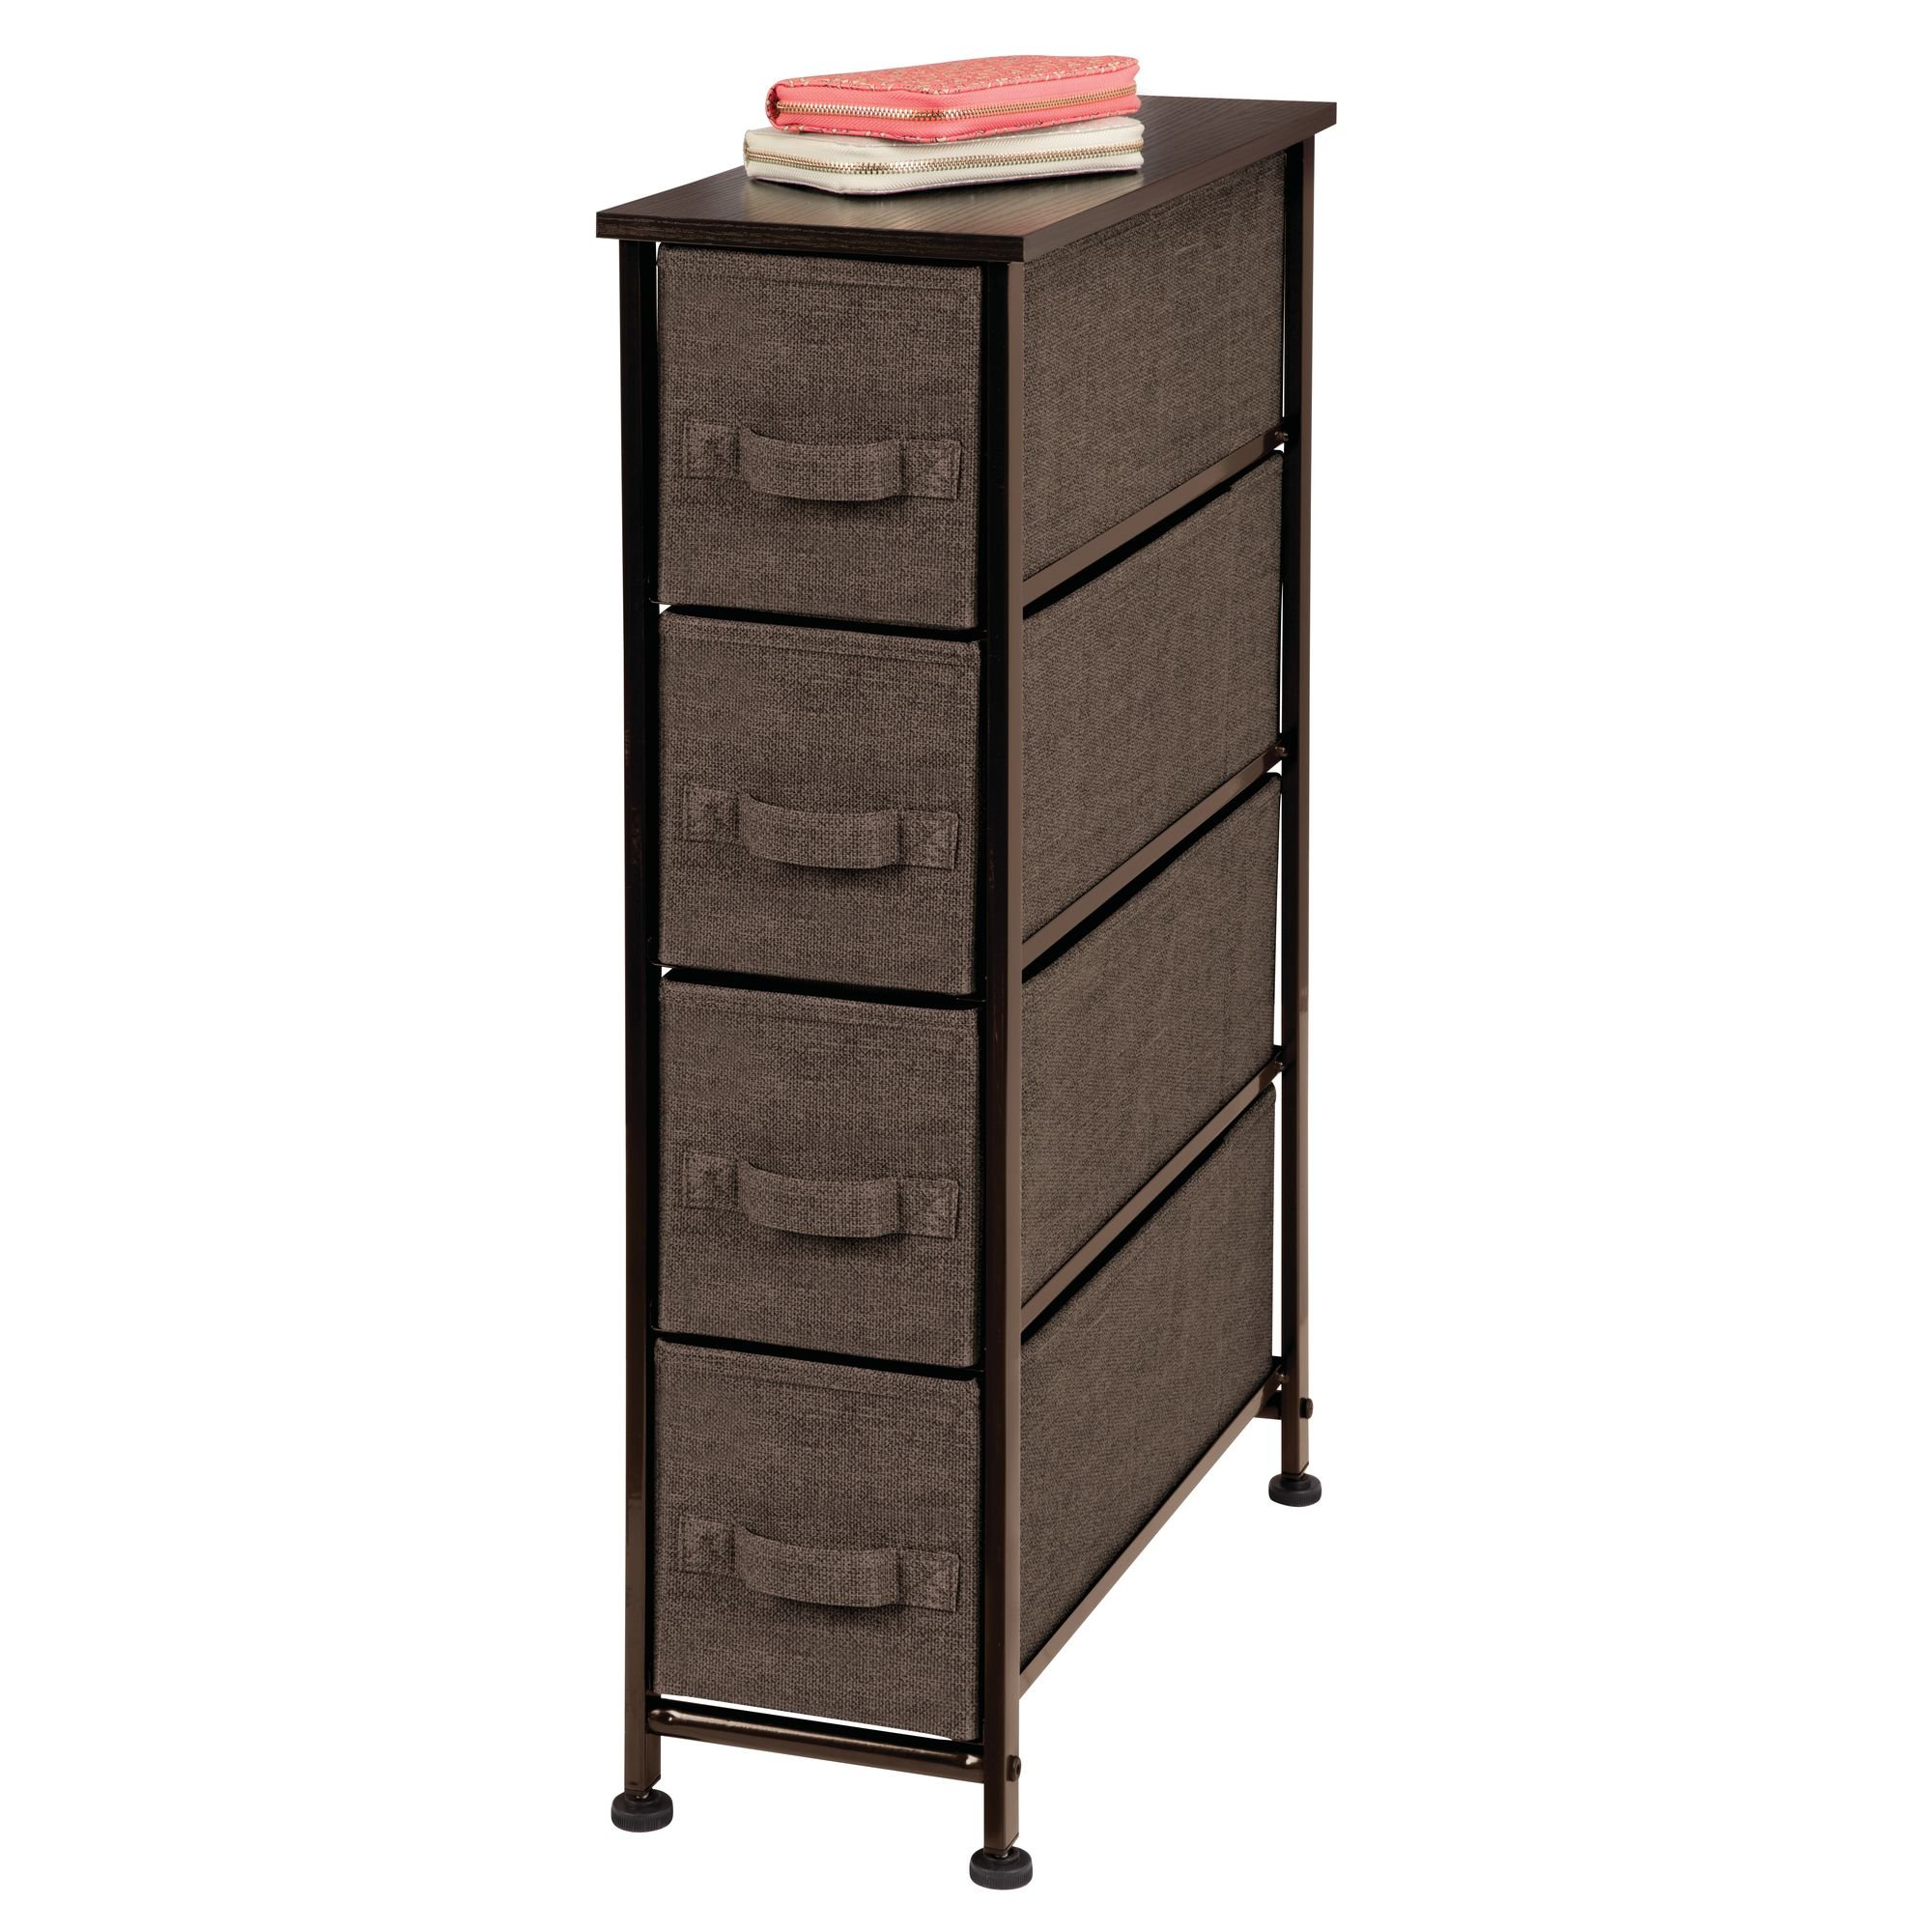 mDesign Narrow Vertical Dresser Storage Tower - Sturdy Steel Frame, Wood Top, Easy Pull Fabric Bins - Organizer Unit for Bedroom, Hallway, Entryway, Closets - Textured Print - 4 Drawers, Espresso